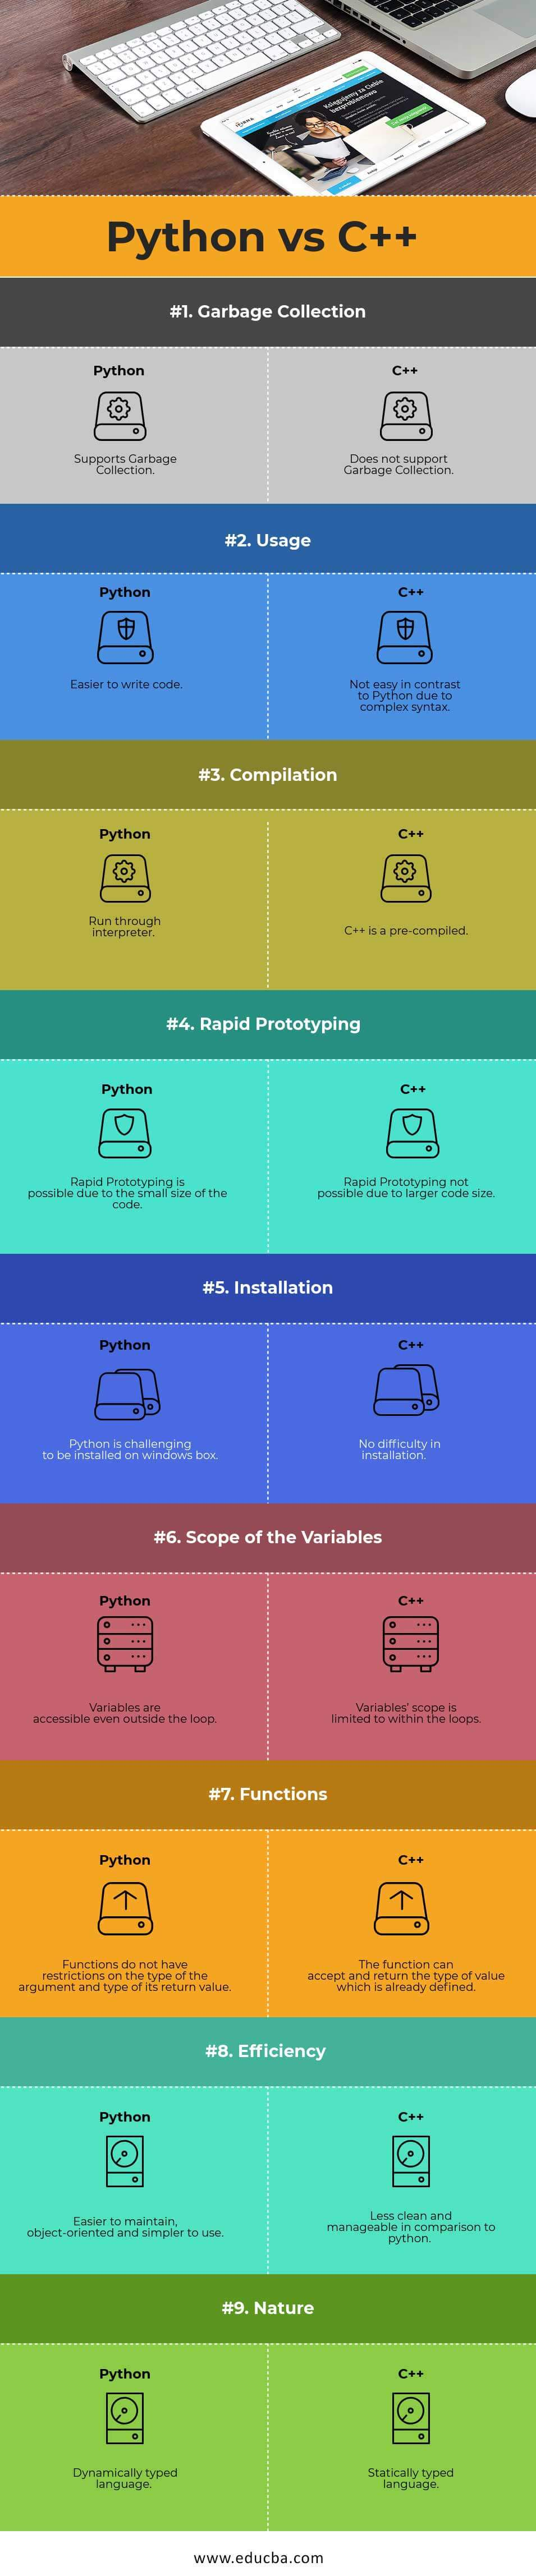 Python vs C++ - Find Out The 9 Important Differences